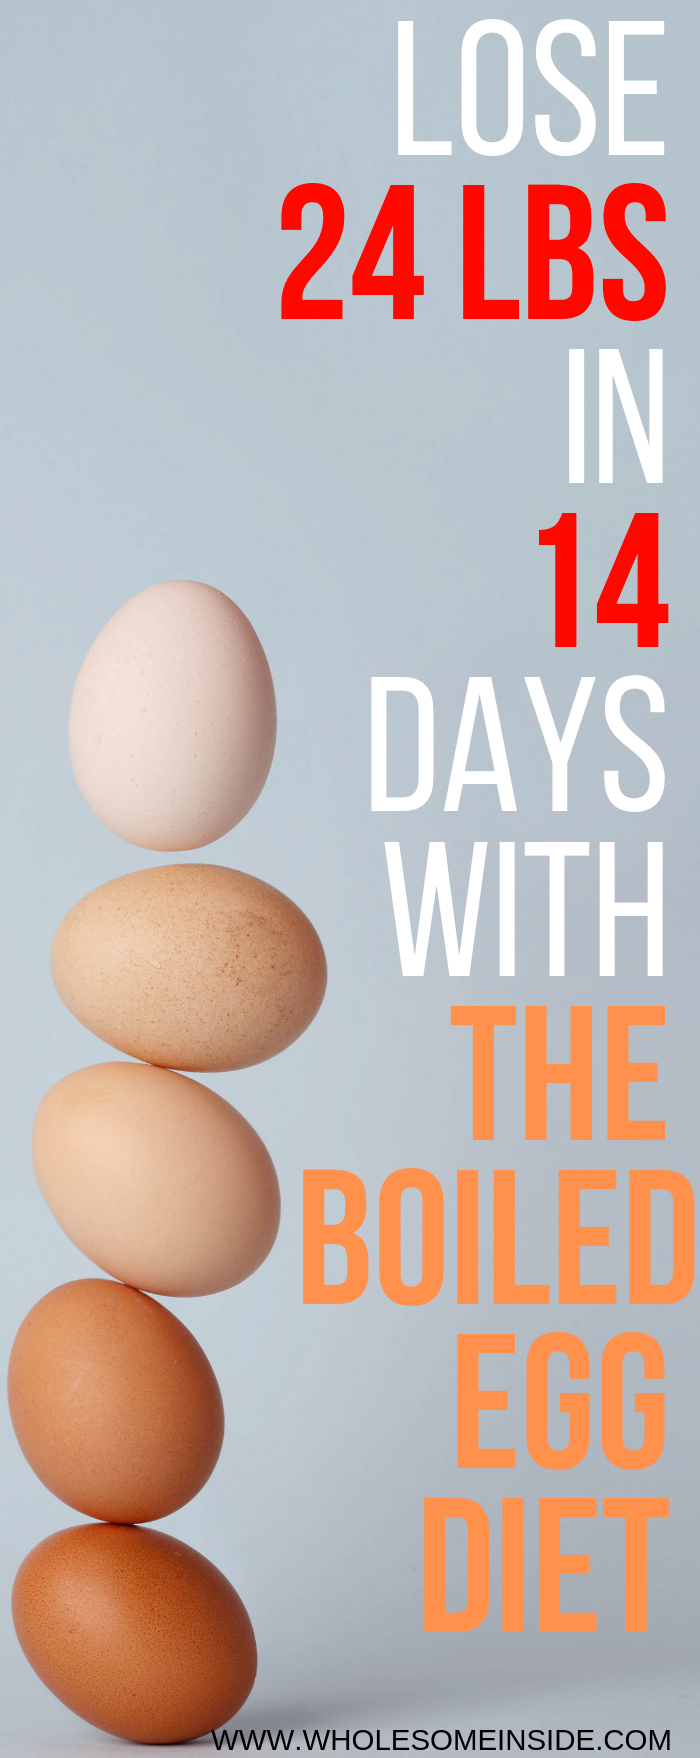 The boiled Egg Diet will give you results within 2 weeks. The before and…